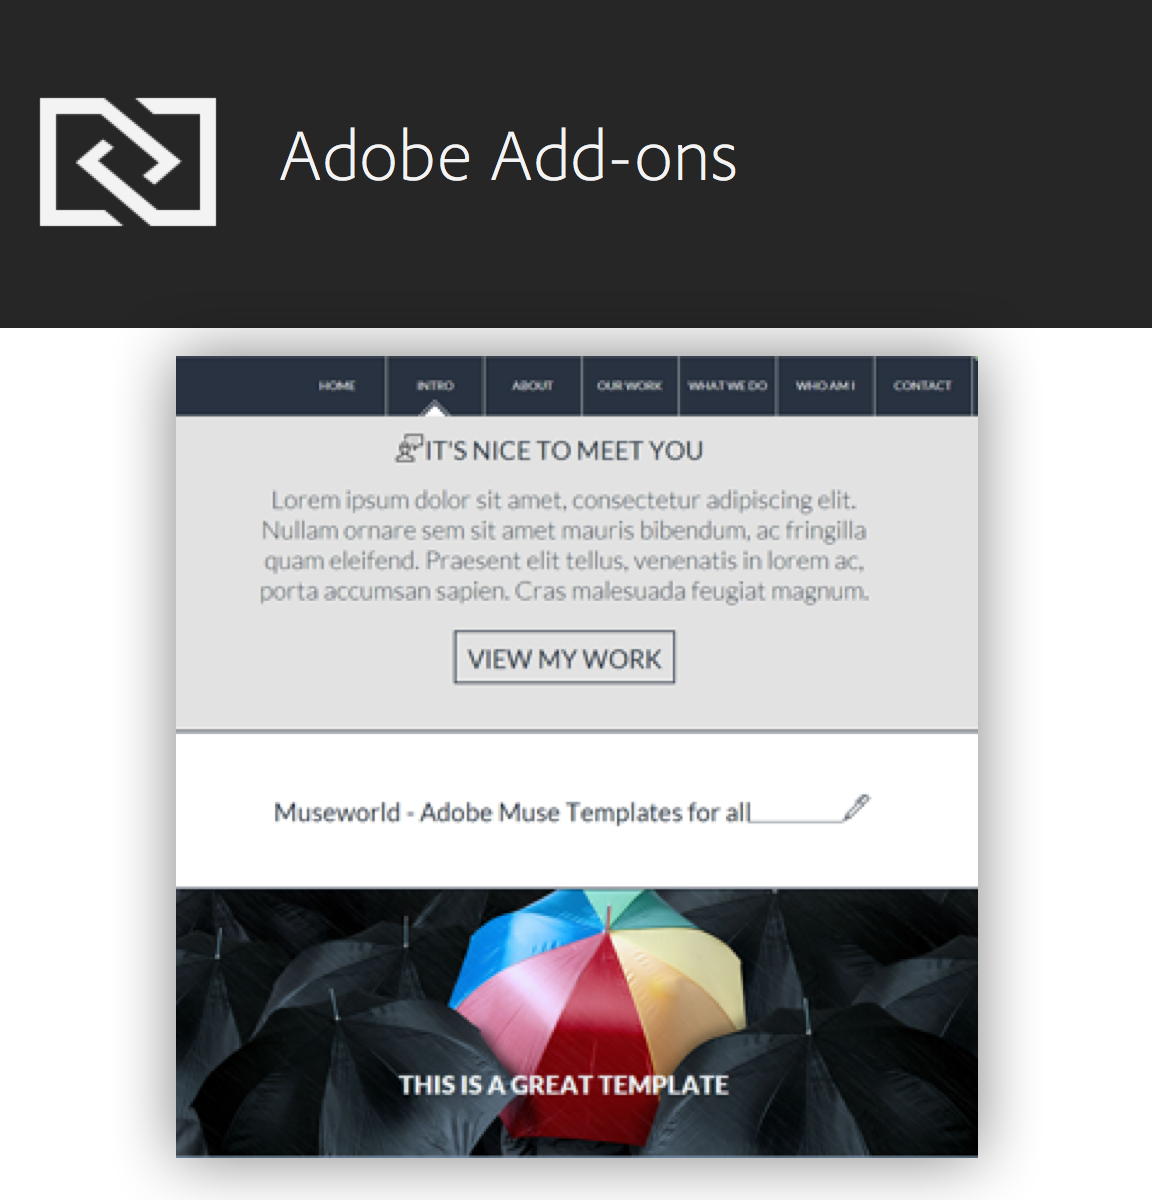 Download design elements such as widgets, wireframes from Adobe Add-ons.